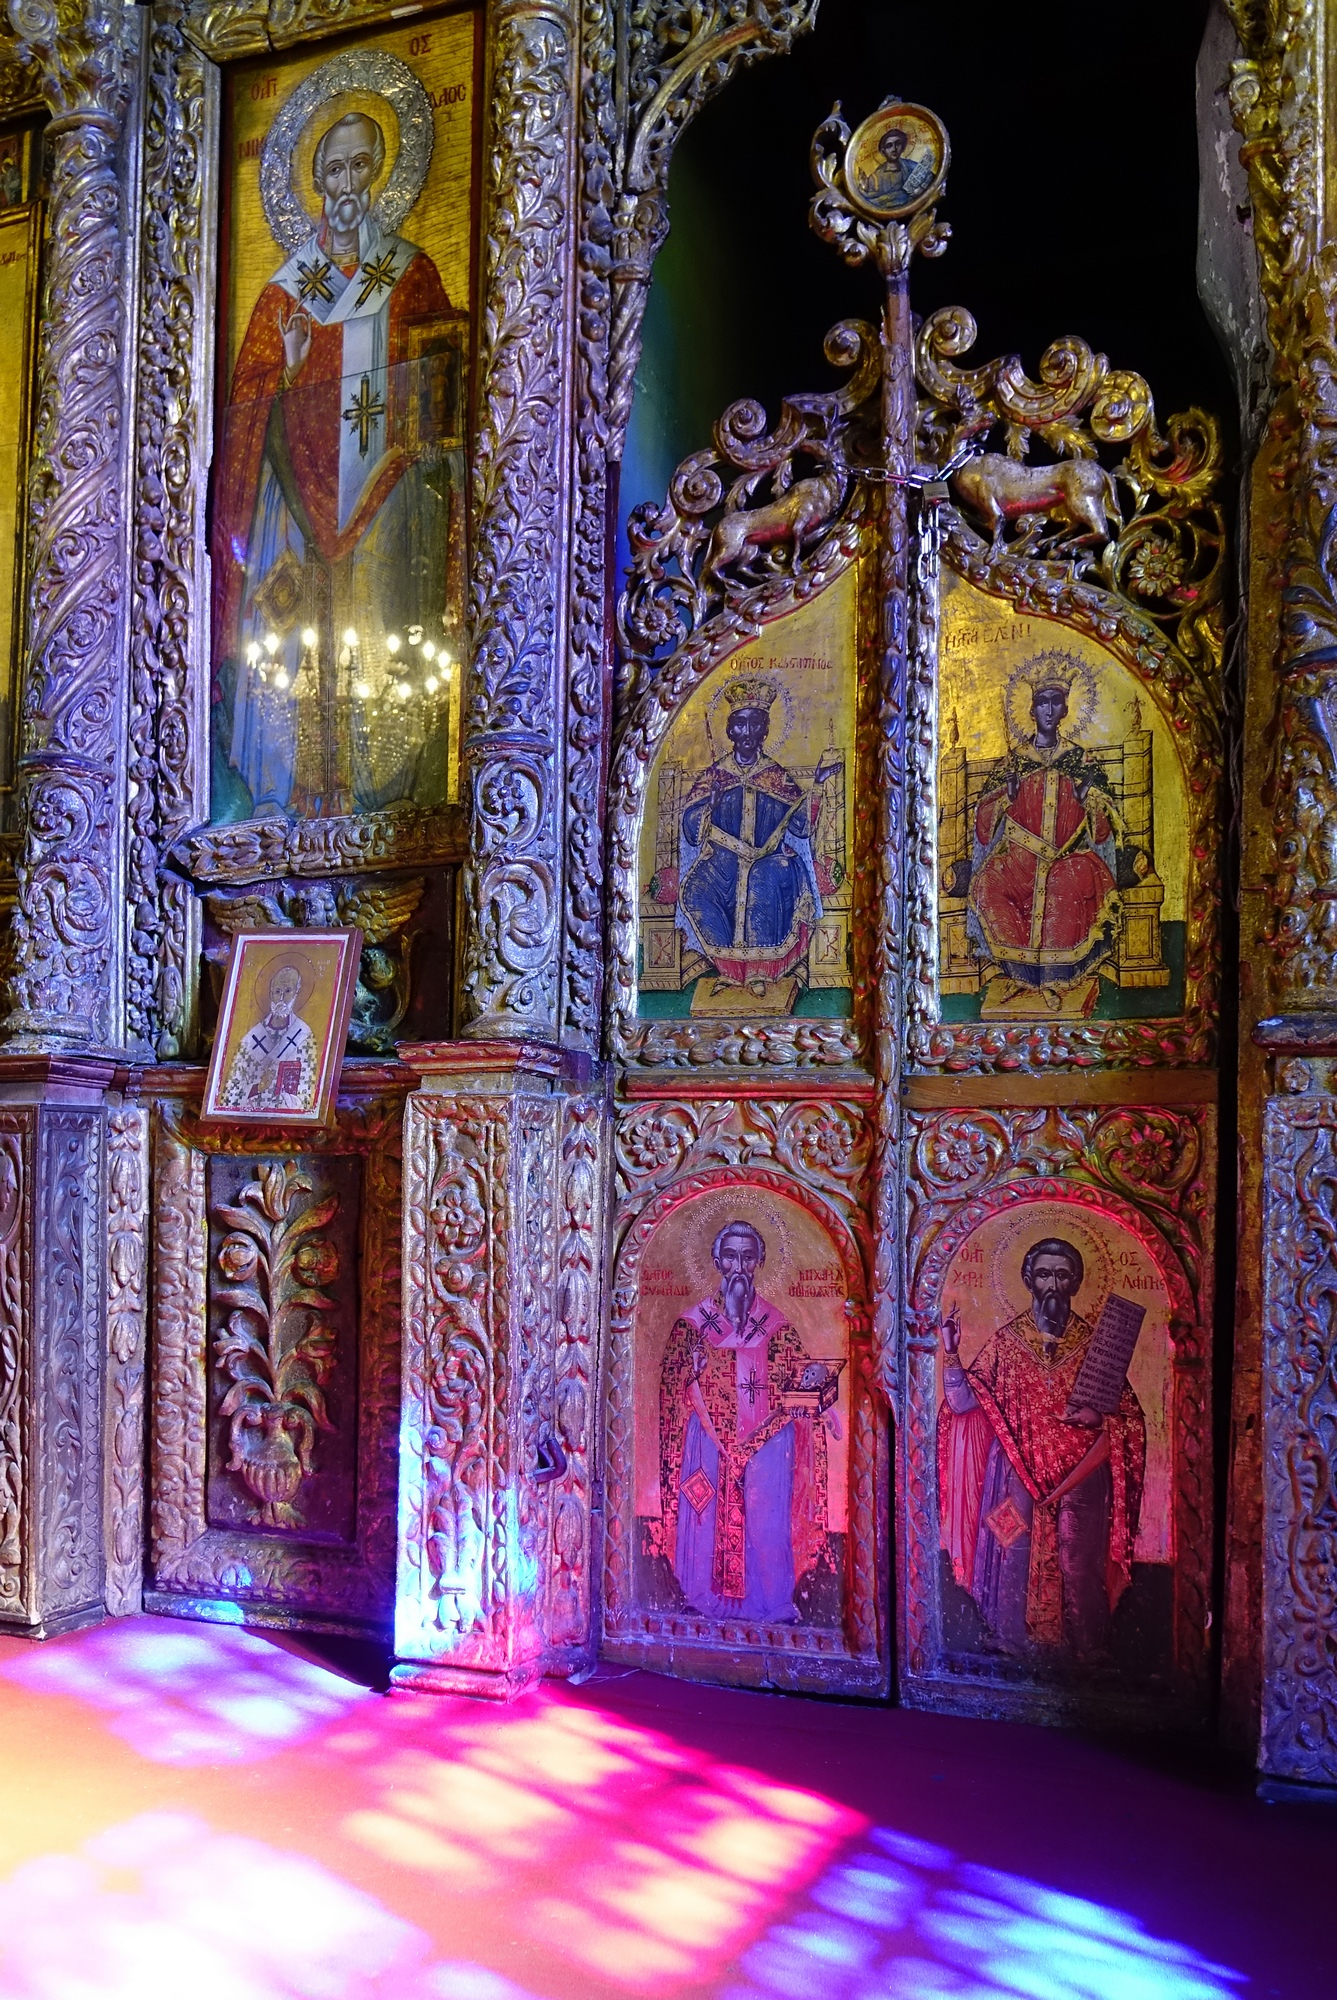 In the Holy Cross Orthodox church in Pano Lefkara